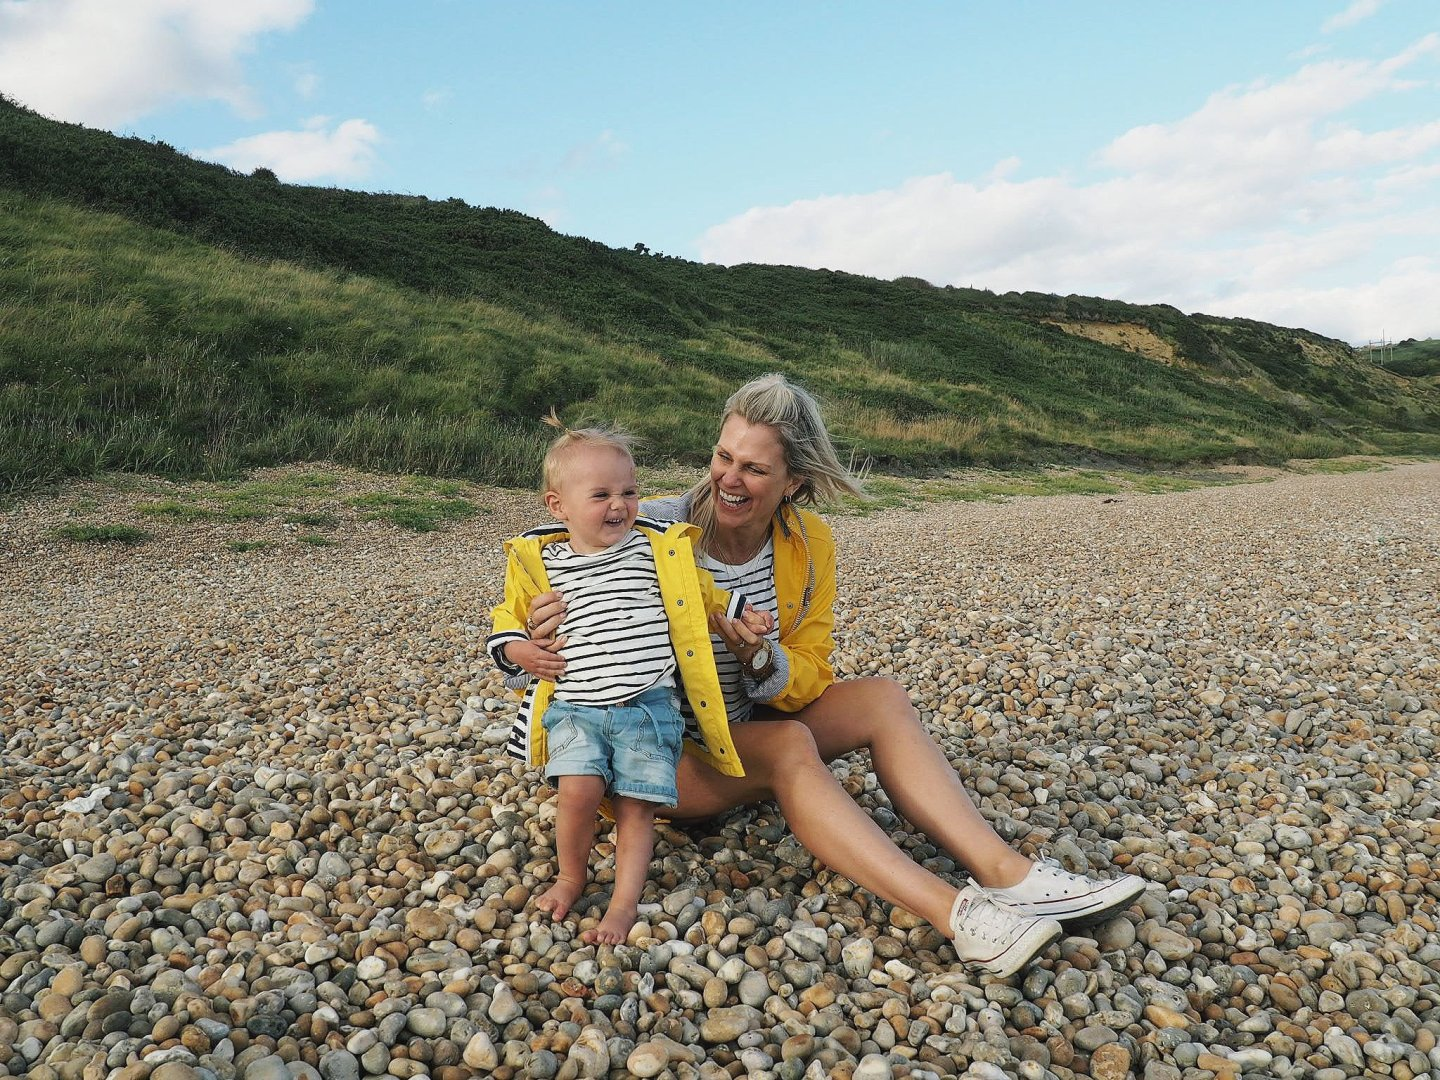 The Essential guide to camping with a baby | mummy and daughter on beach in matching yellow coats